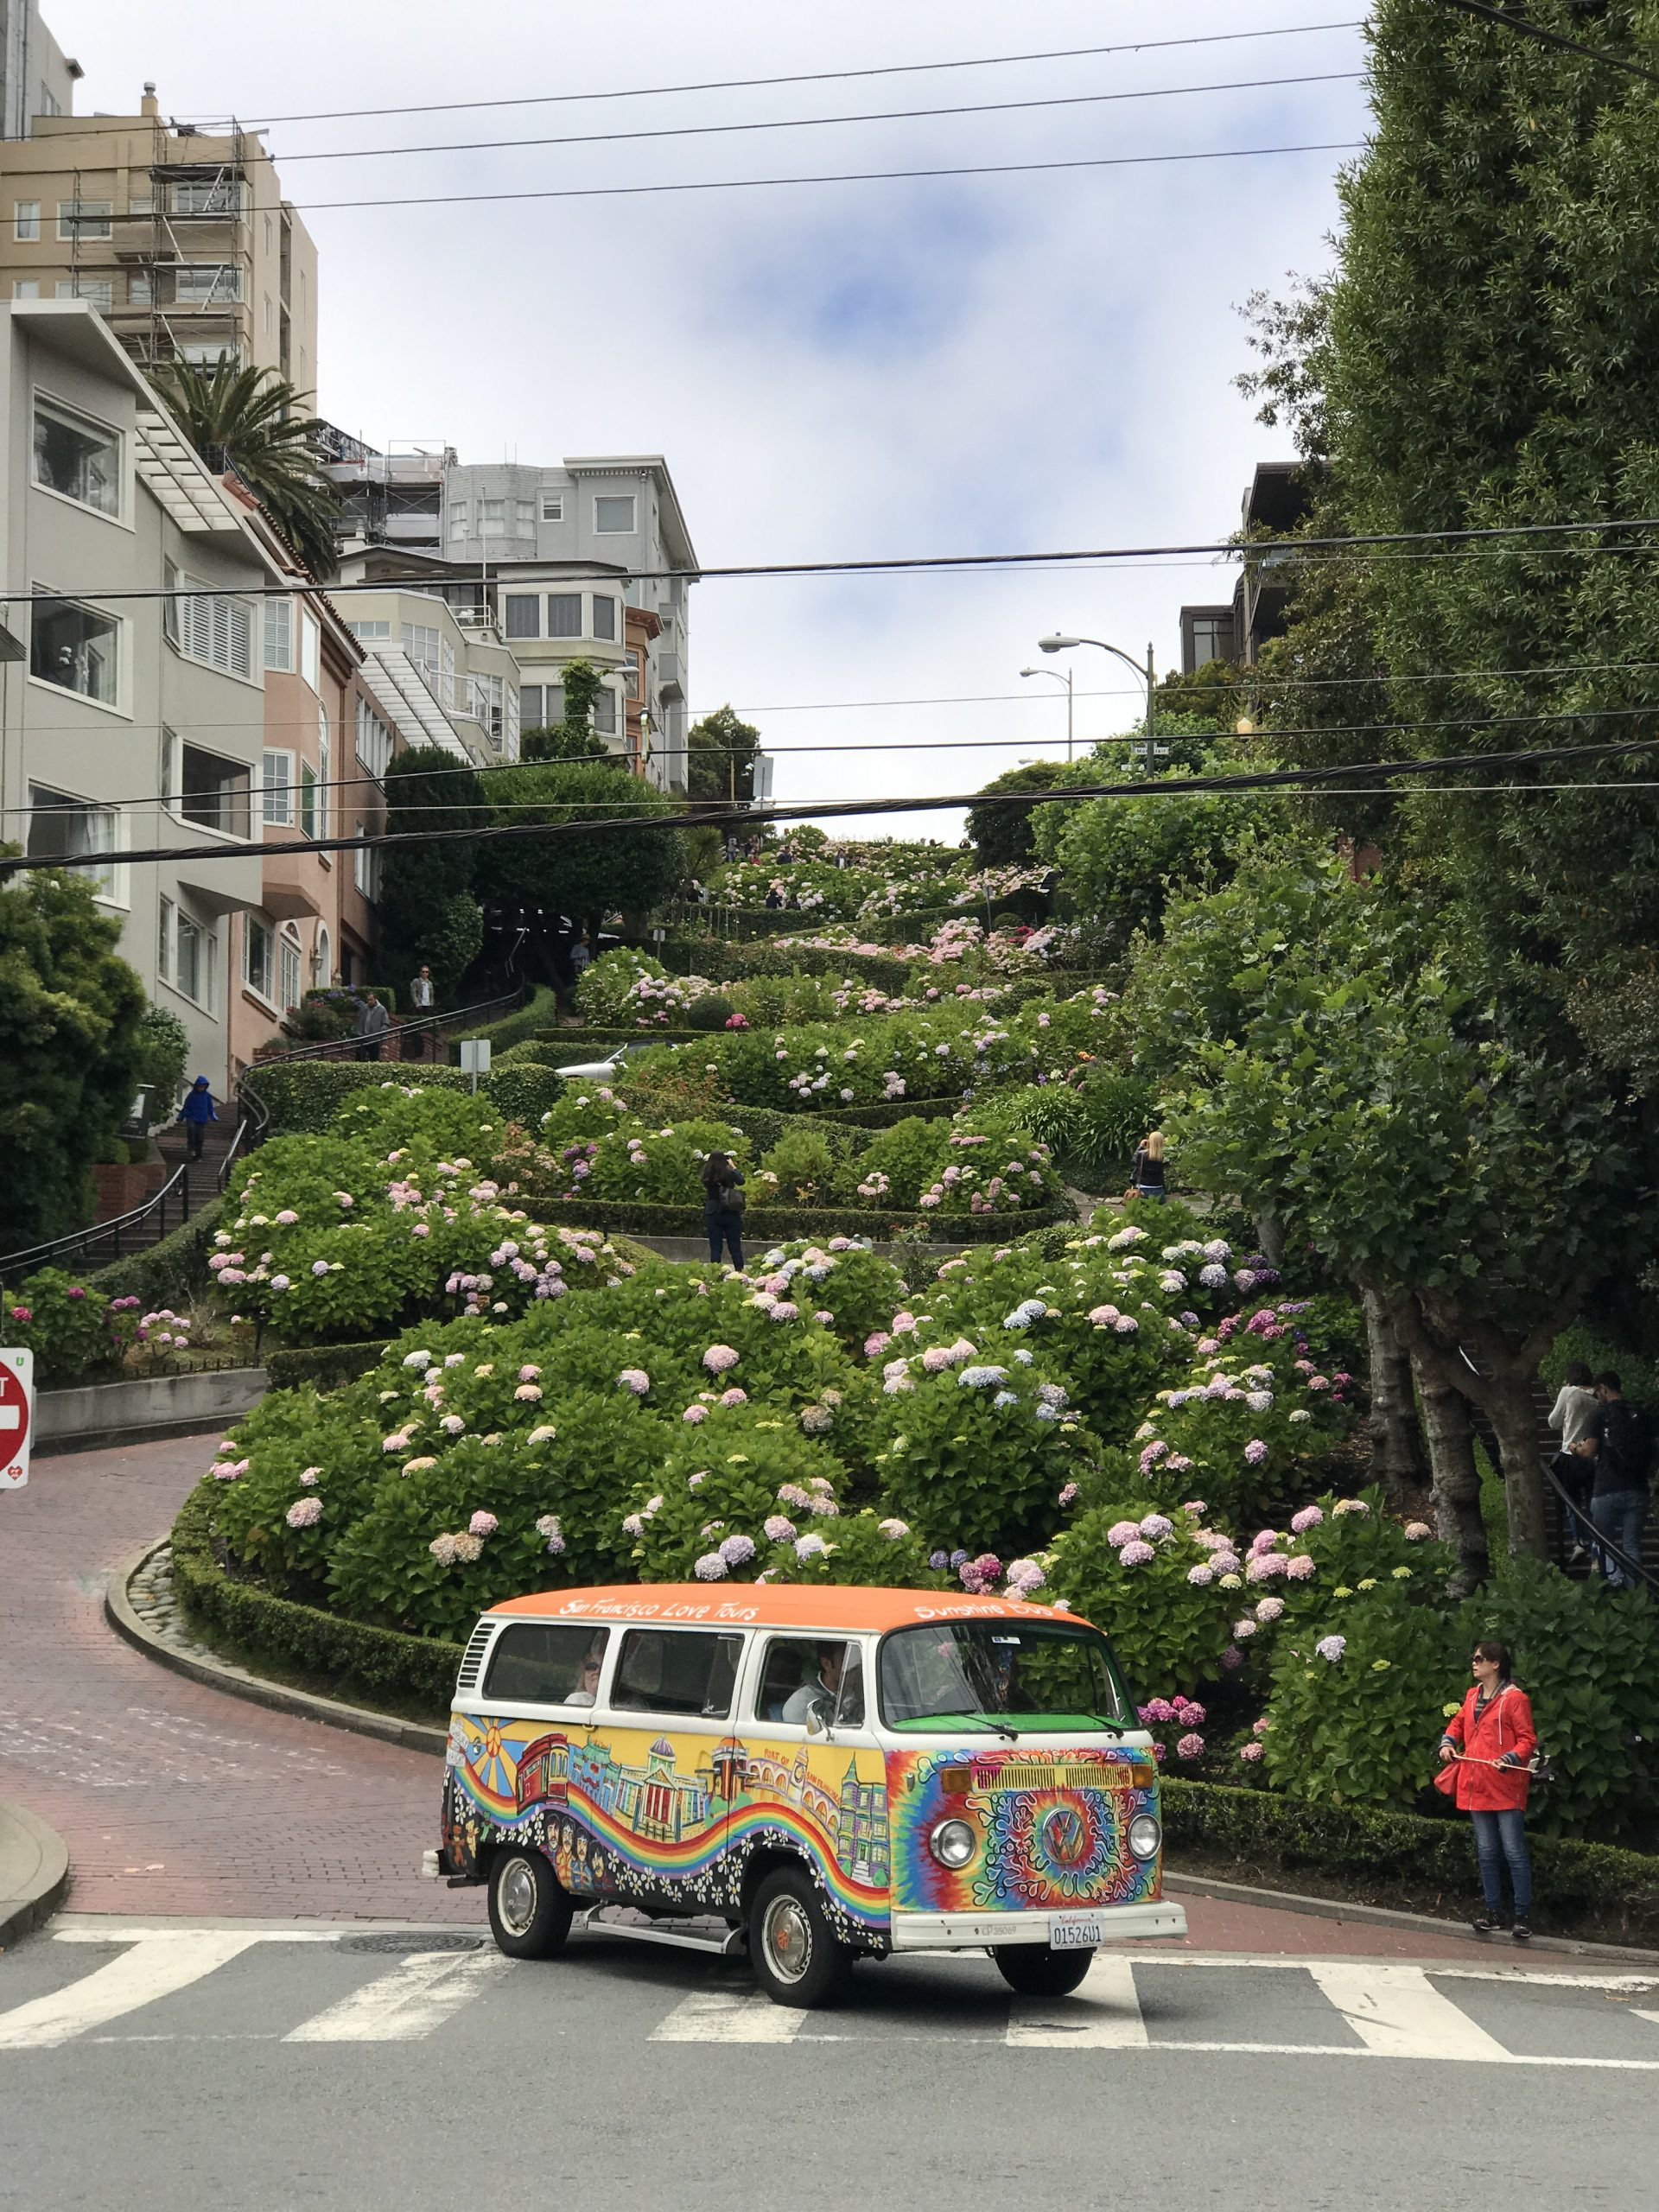 Volkswagon Bus in front of Lombard Streed